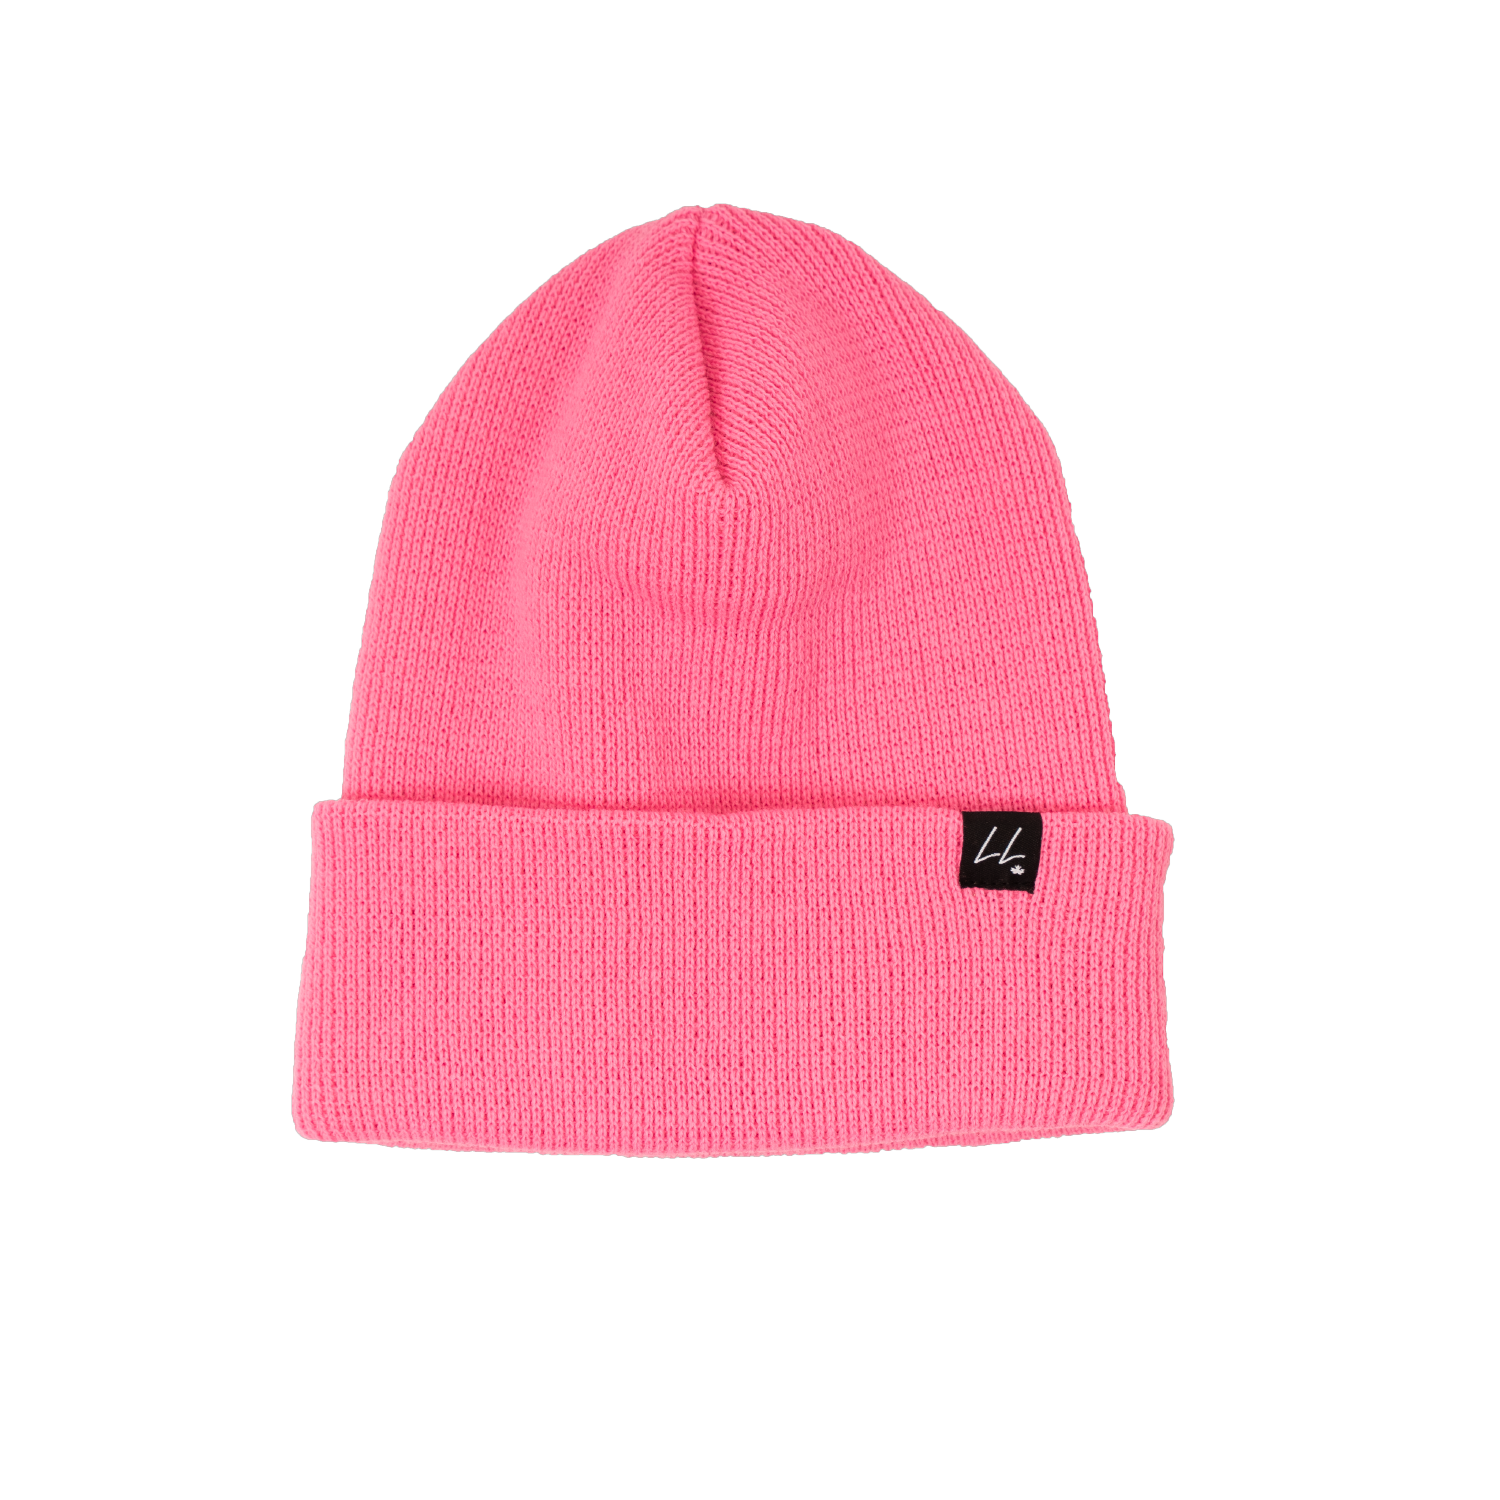 The Giving Toque -  Buy One, Donate One To Someone In Need - Hot Pink - Local Laundry